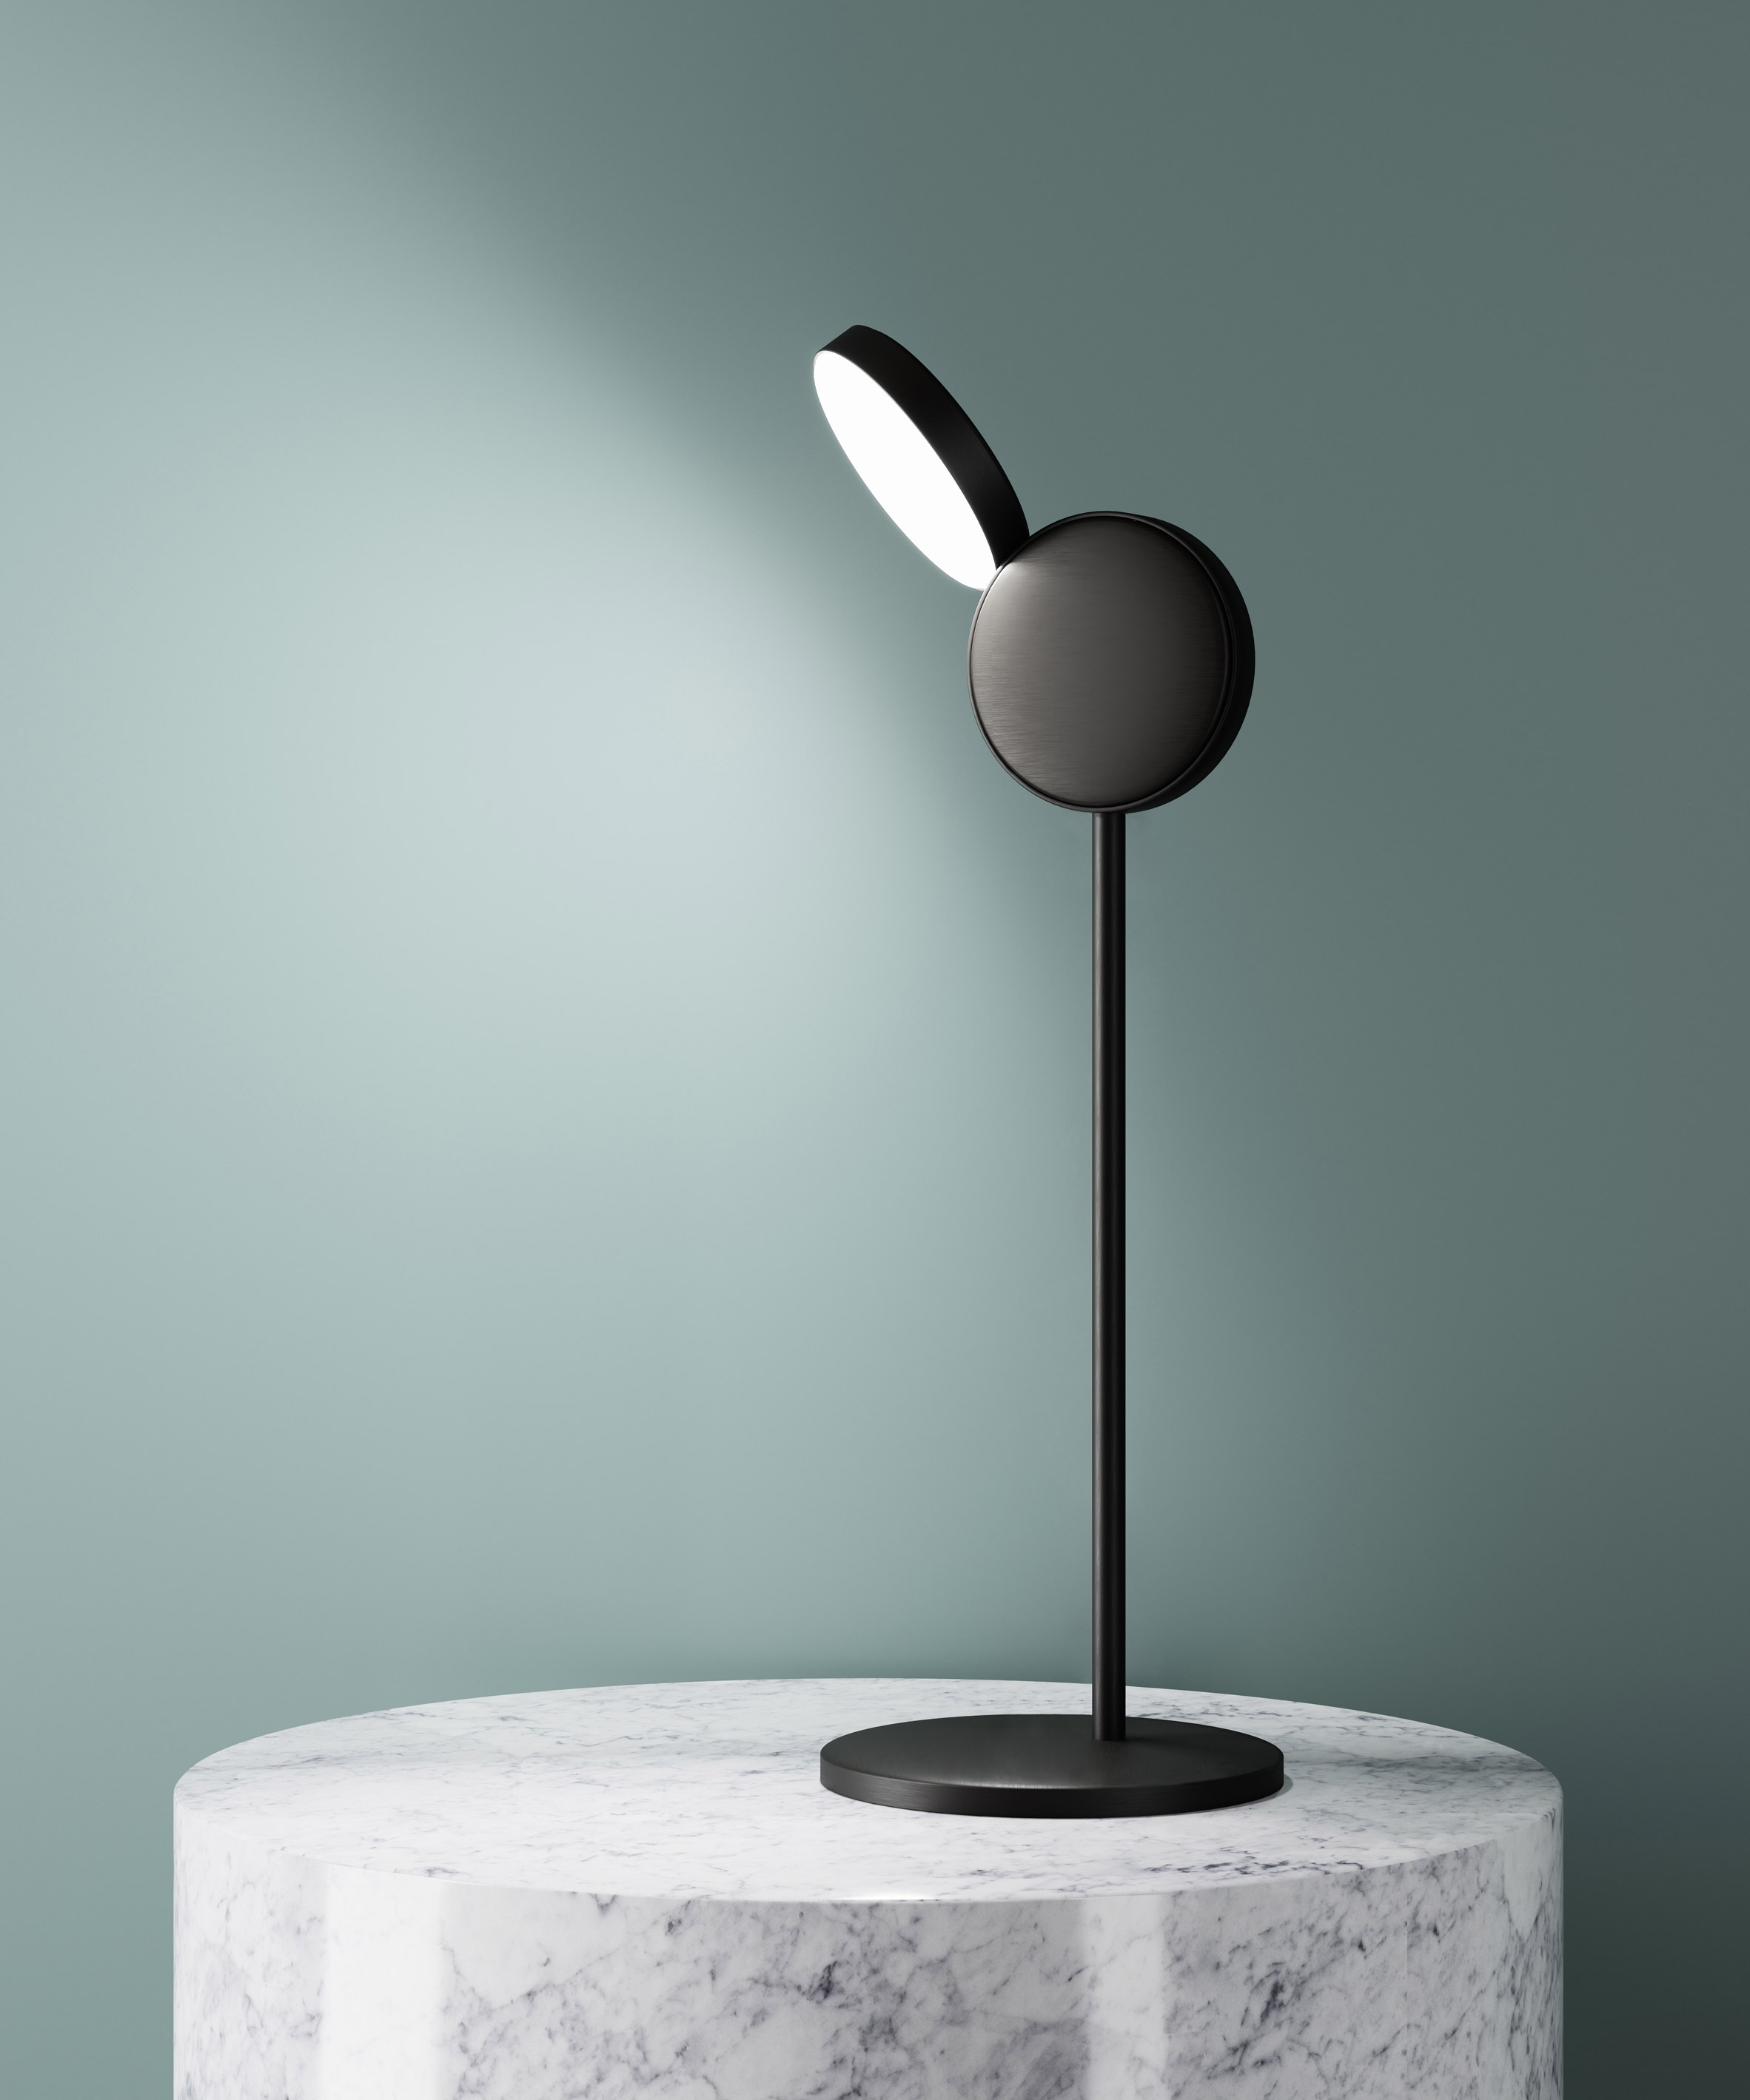 """Claesson Koivisto Rune's disc-shaped Optunia lights are """"devoid of unnecessary detailing"""""""